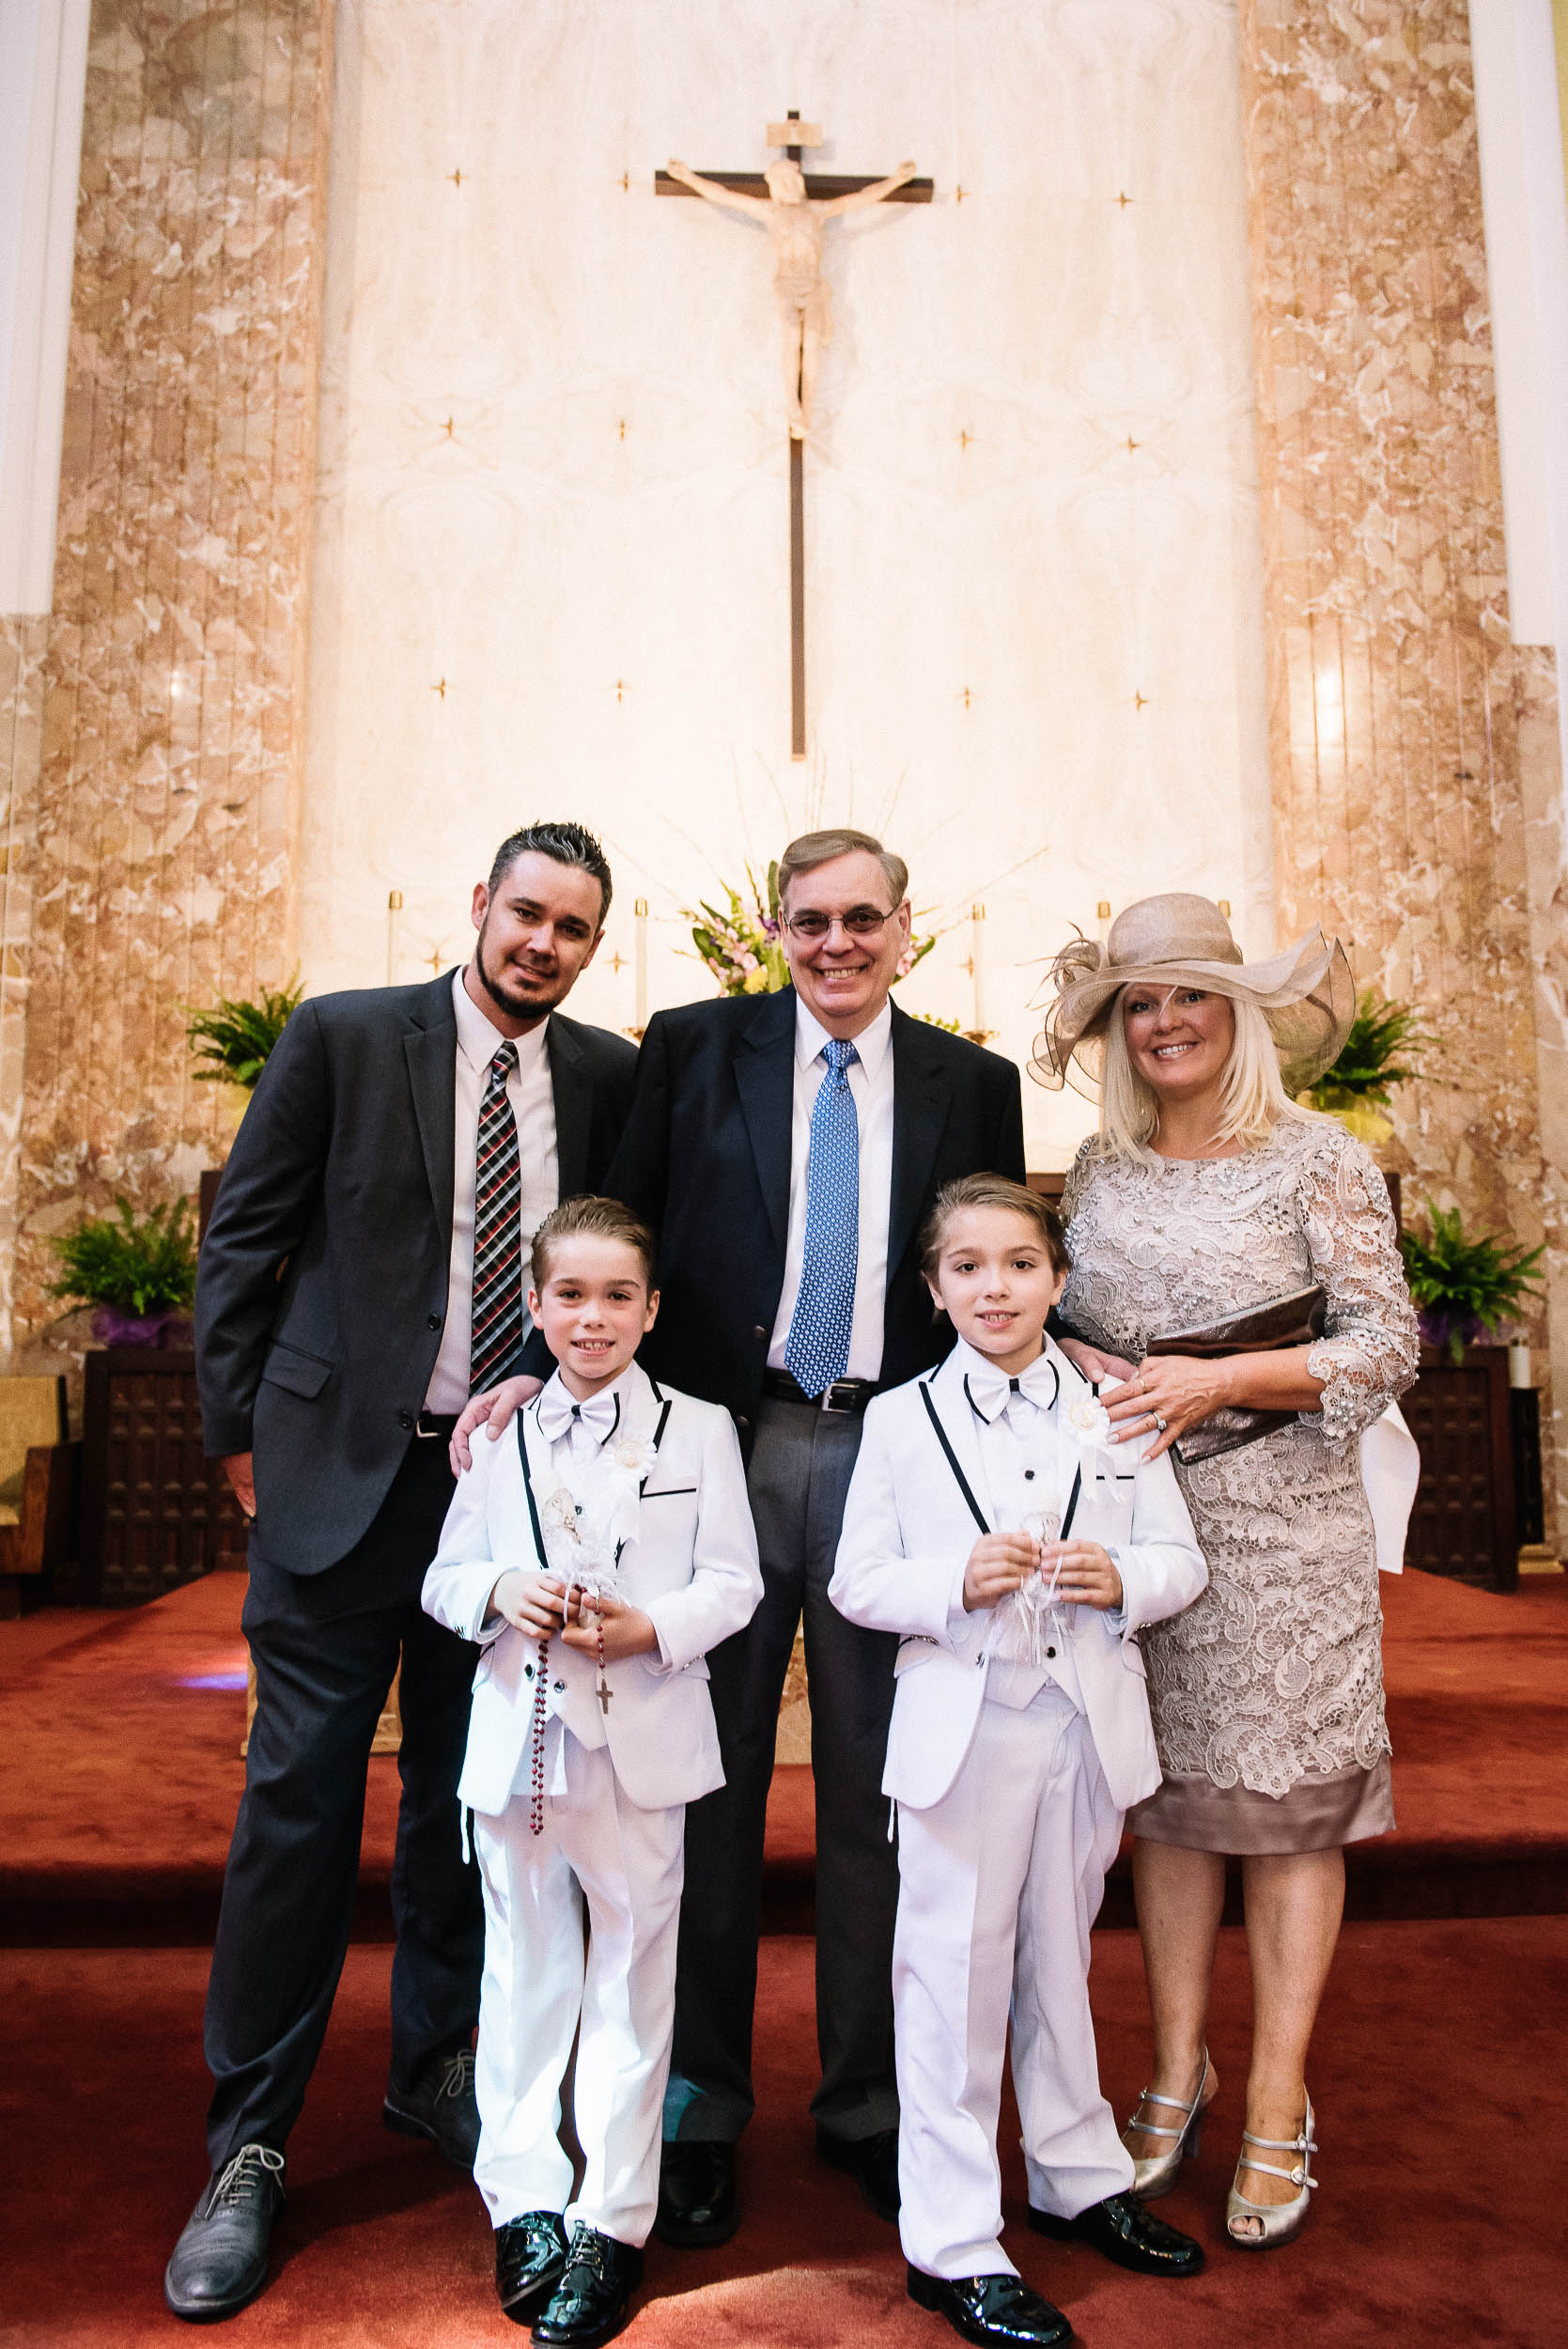 Bryan-Miraflor-Photography-First-Communion-Our-Lady-of-Grace-Church-20160501-0103.jpg